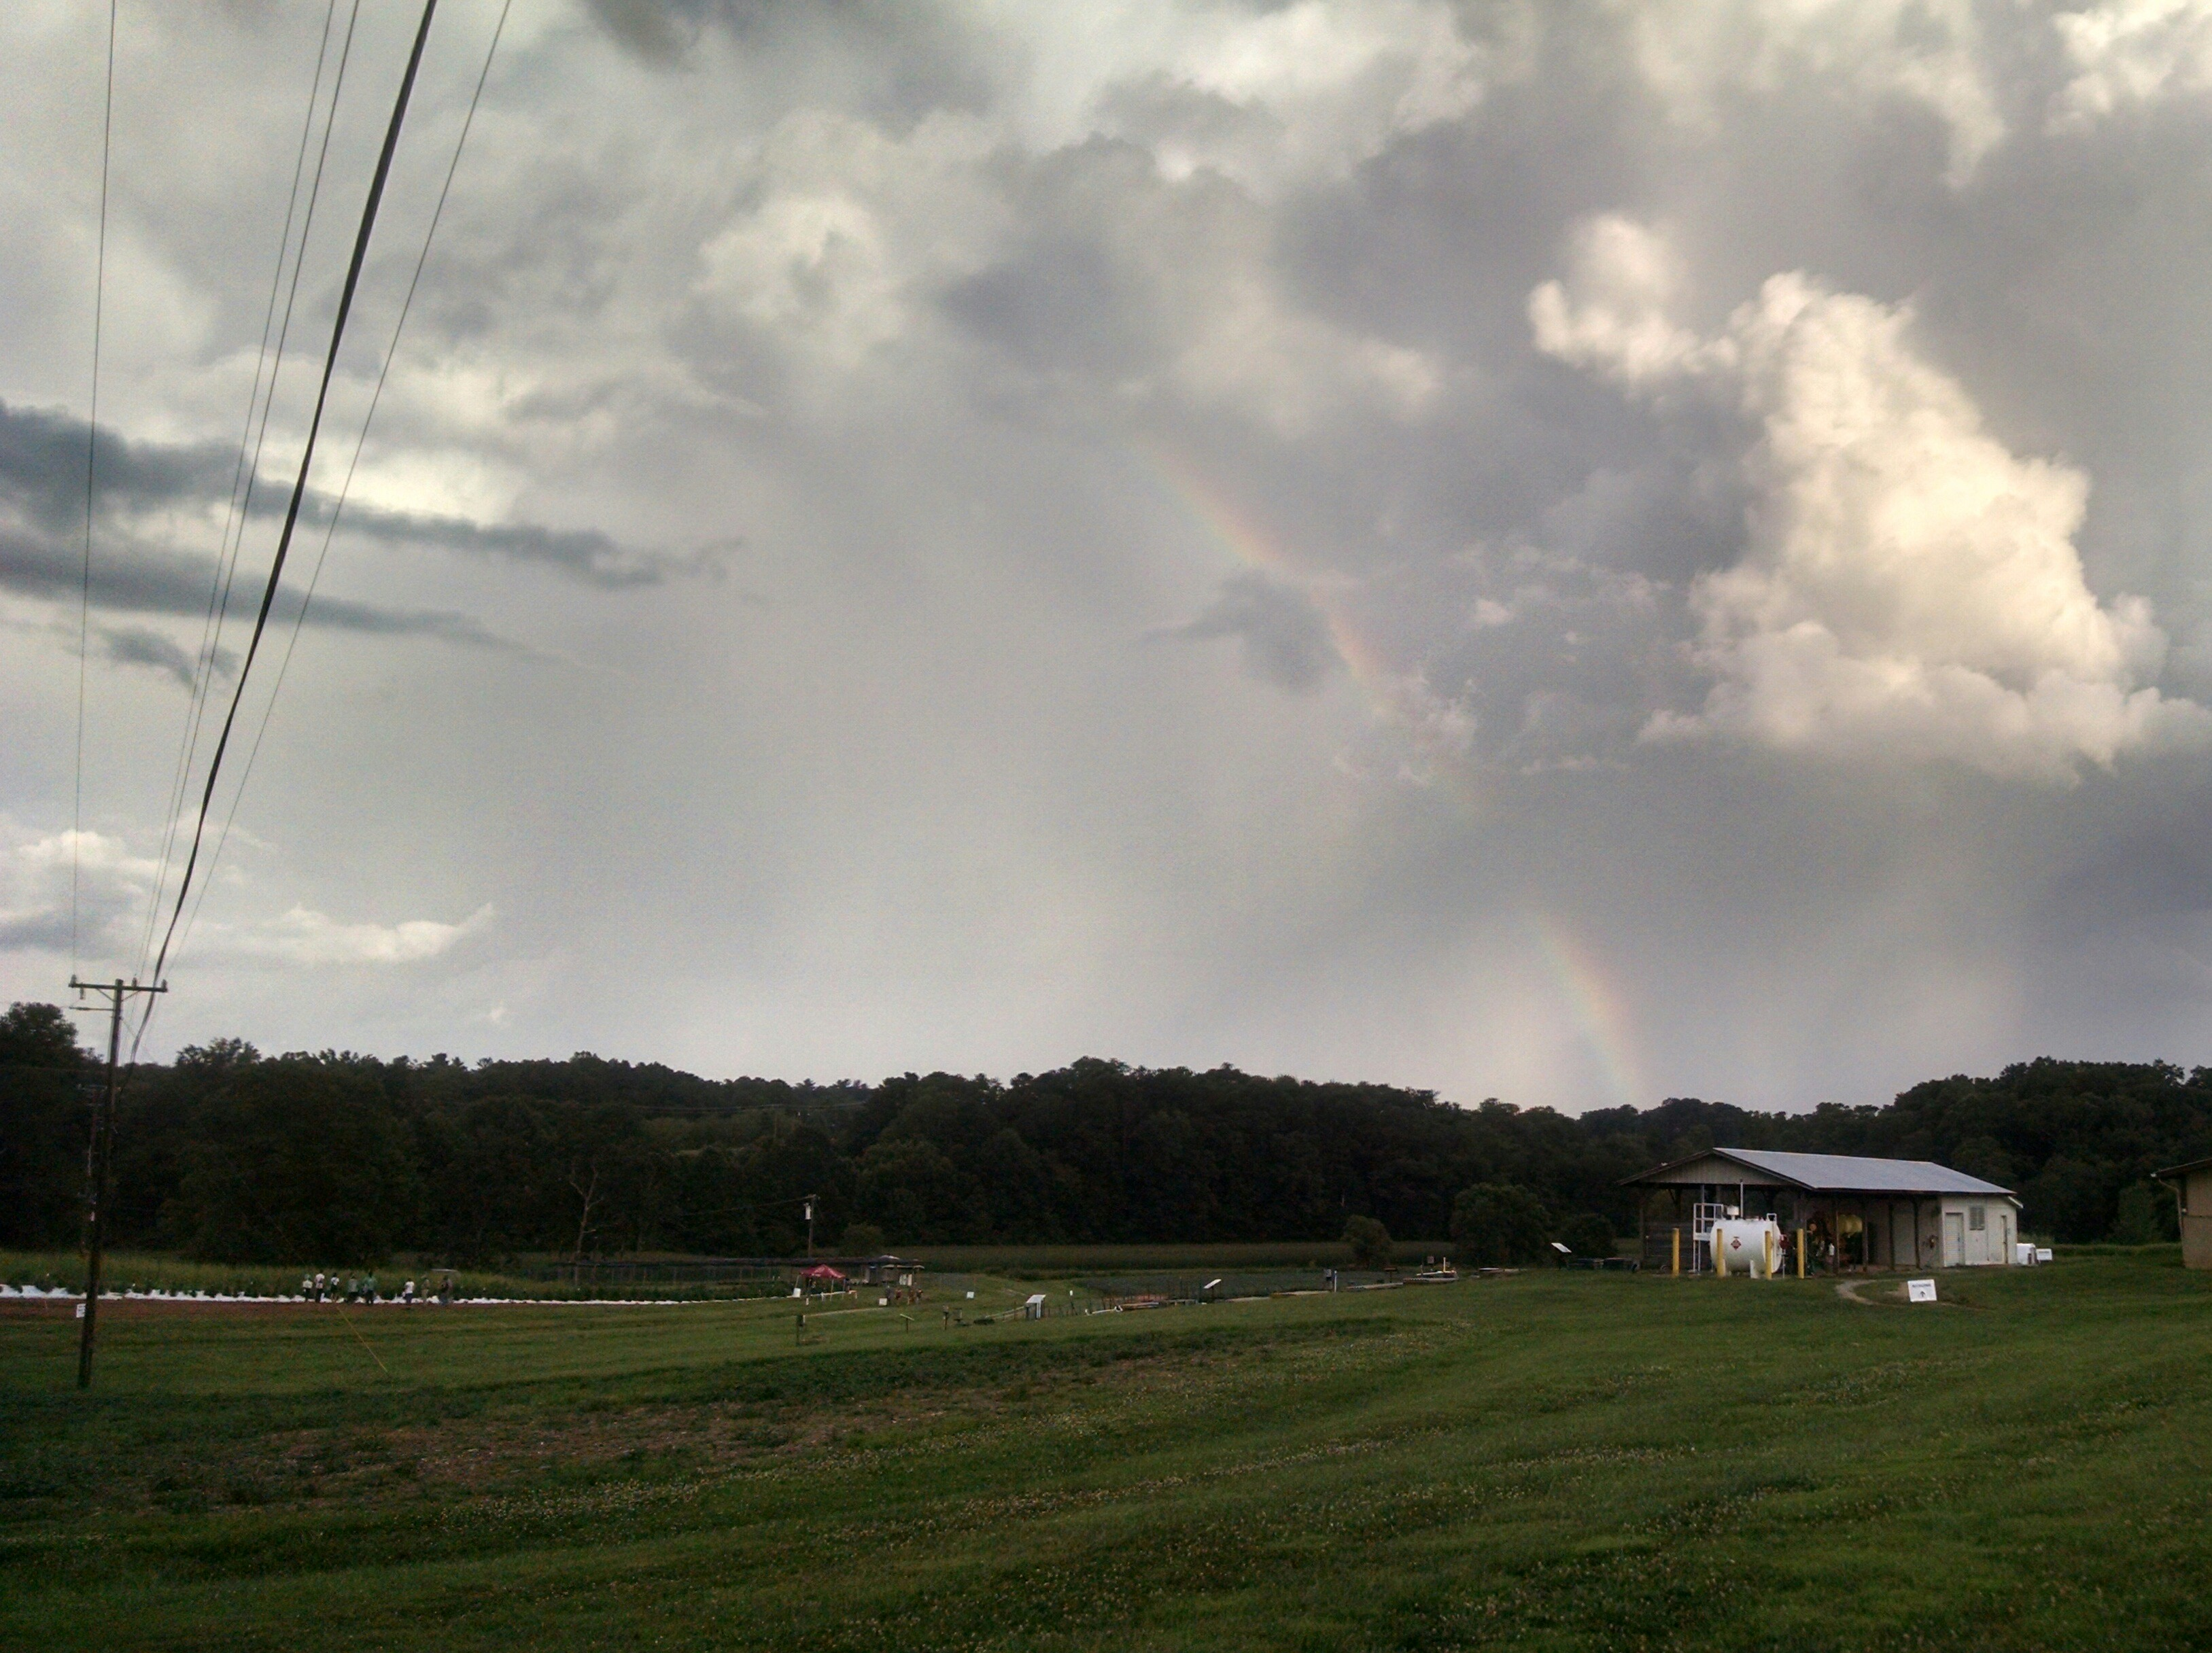 Rainbow over a field area